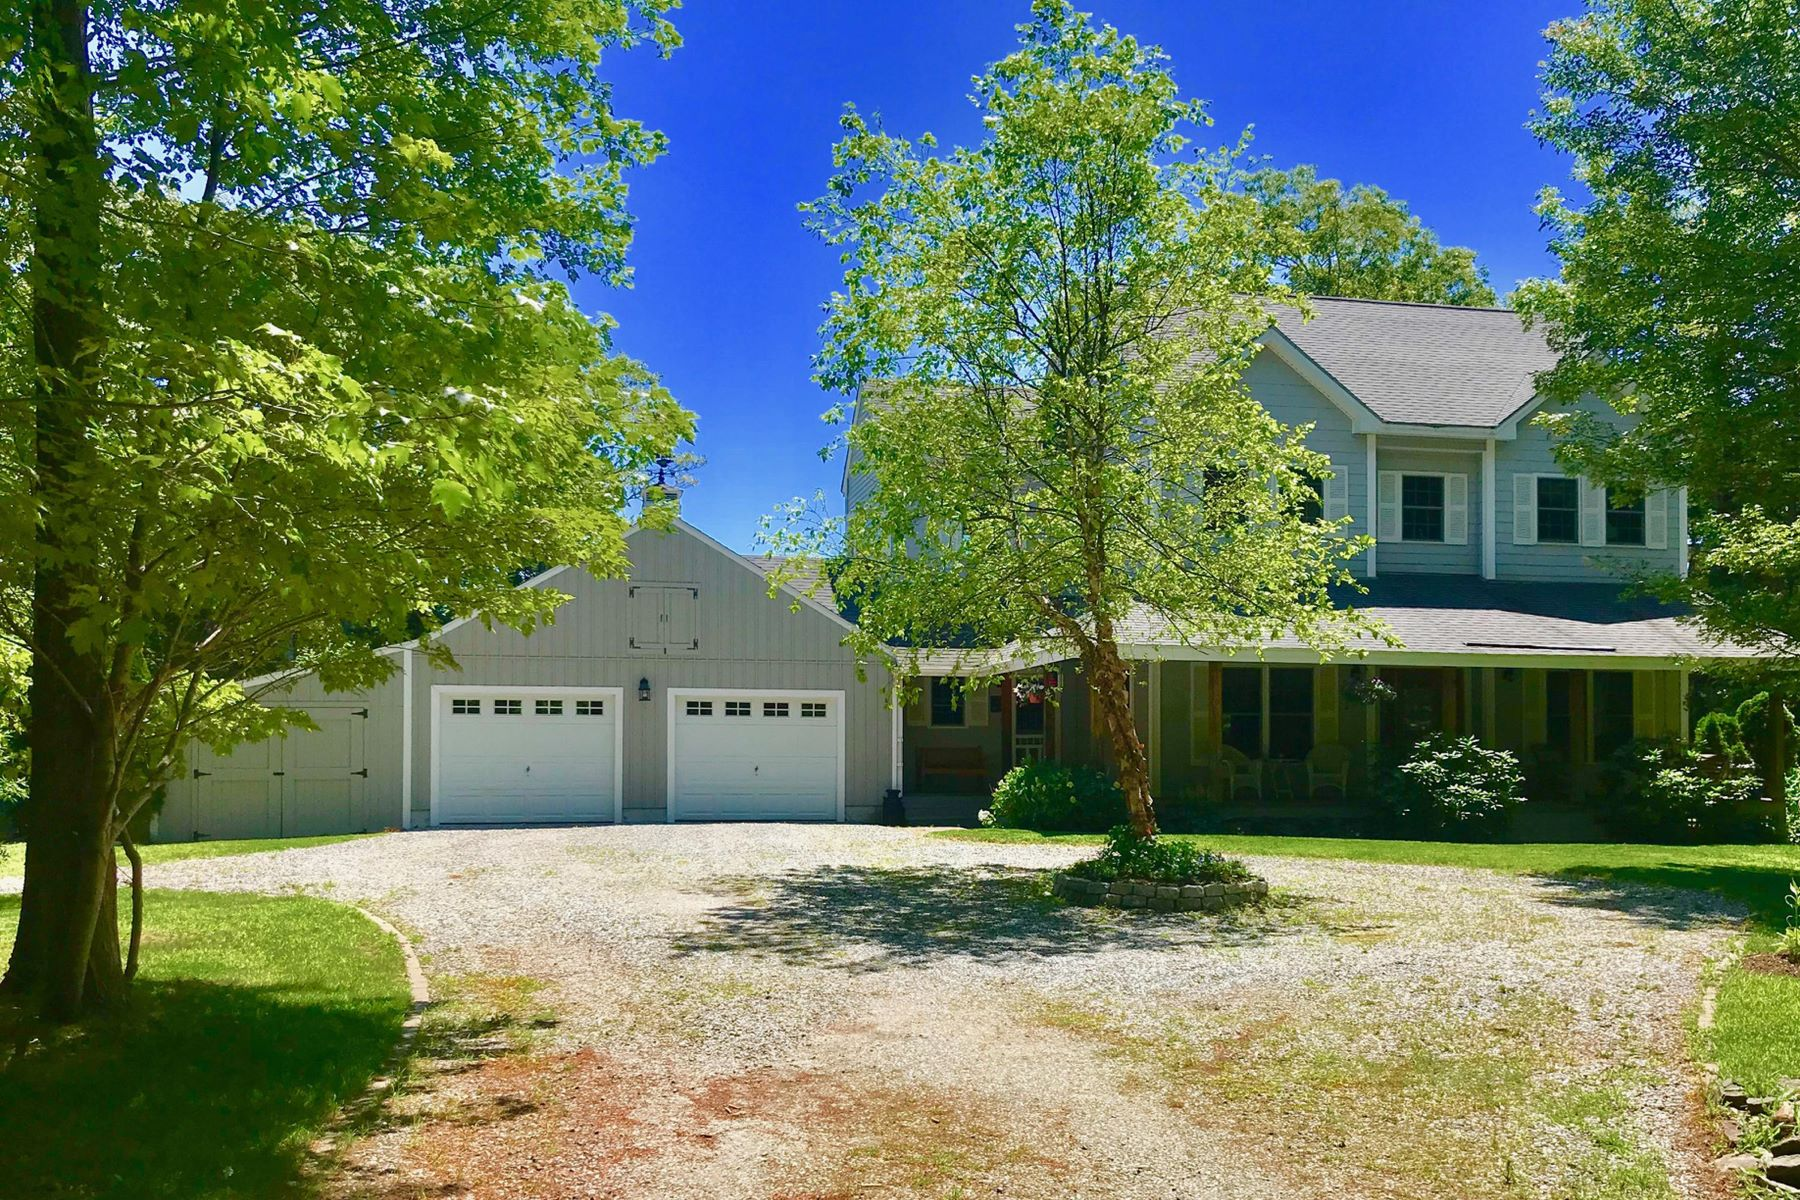 Single Family Homes for Active at 6 Nickerson Pond Road Boothbay, Maine 04544 United States